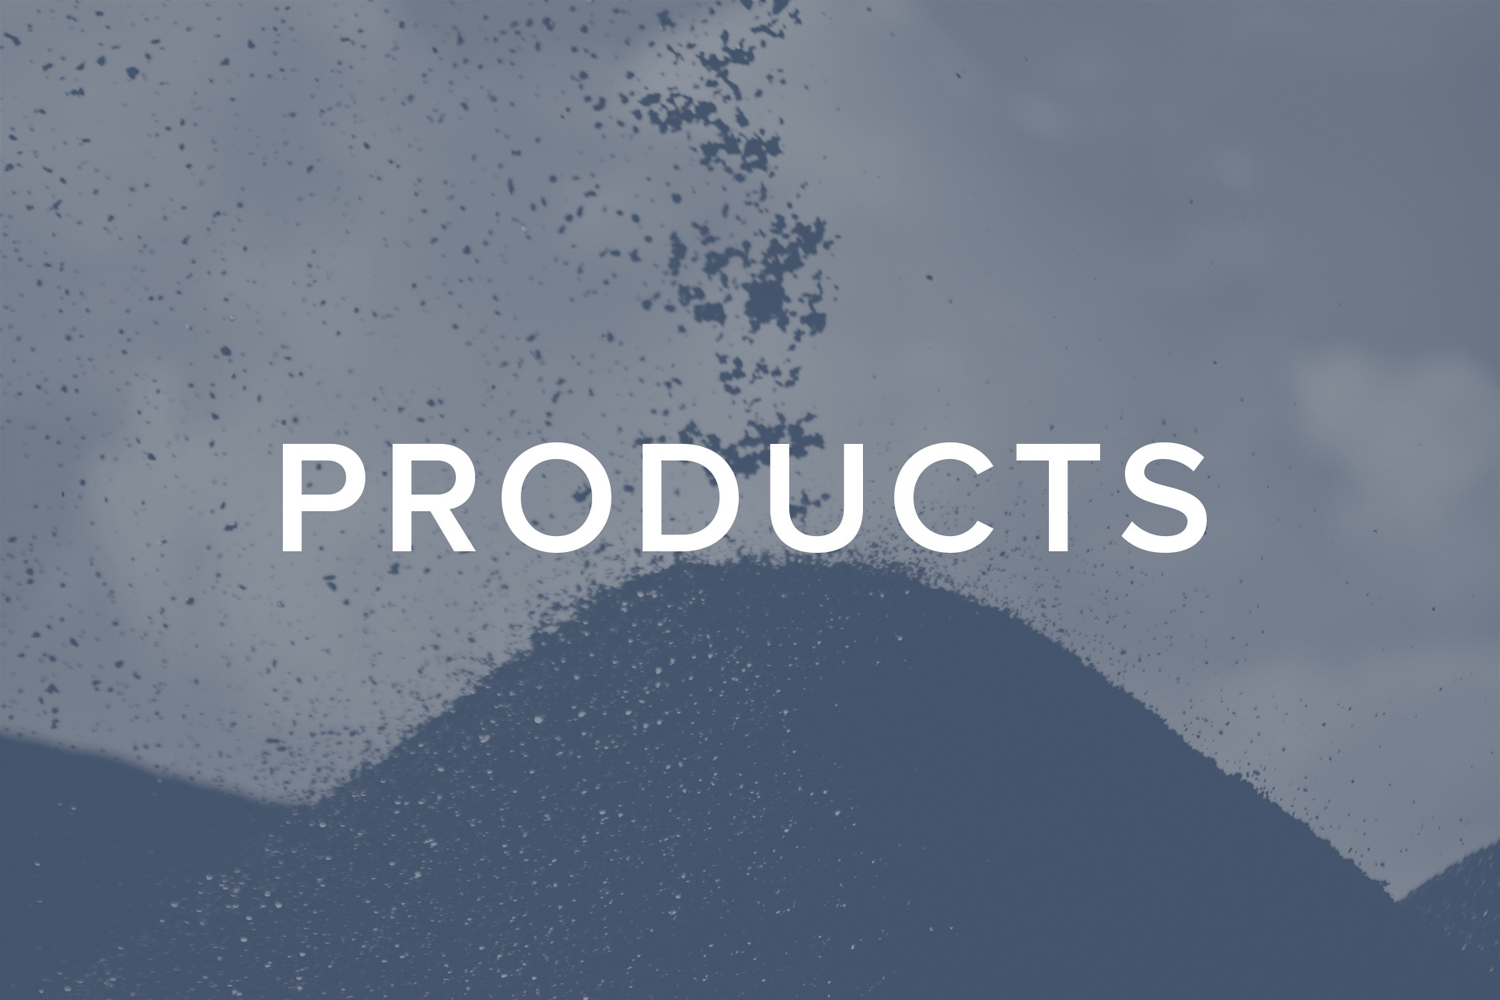 products-02.jpg